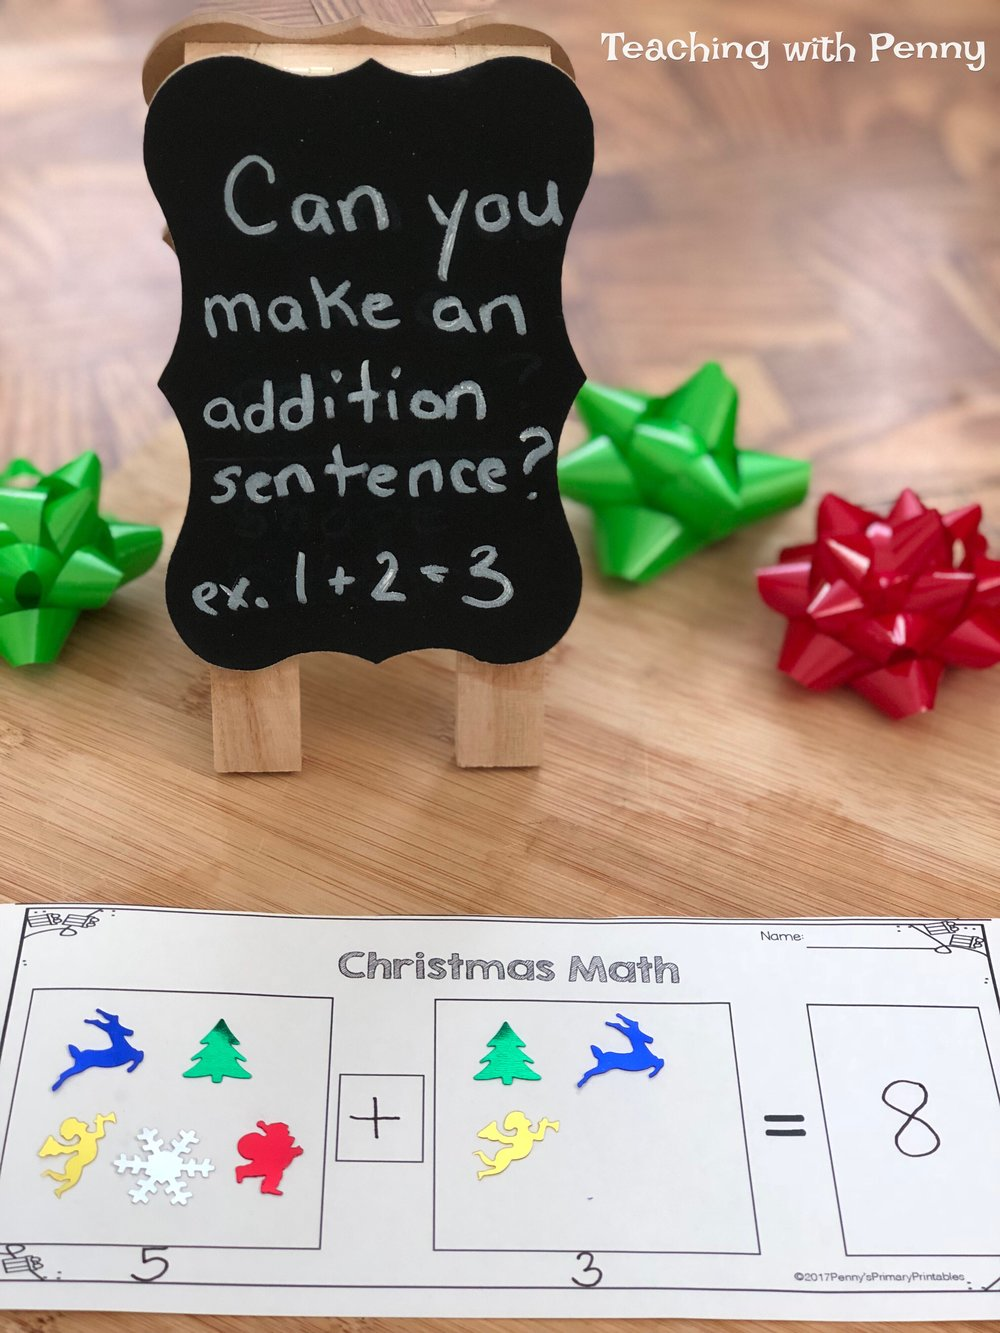 Christmas confetti is perfect for making addition sentences. Grab the free printable at the end of the post! You can use it with any Christmas items or have students draw pictures instead. You can find similar Christmas confetti on Amazon  here .